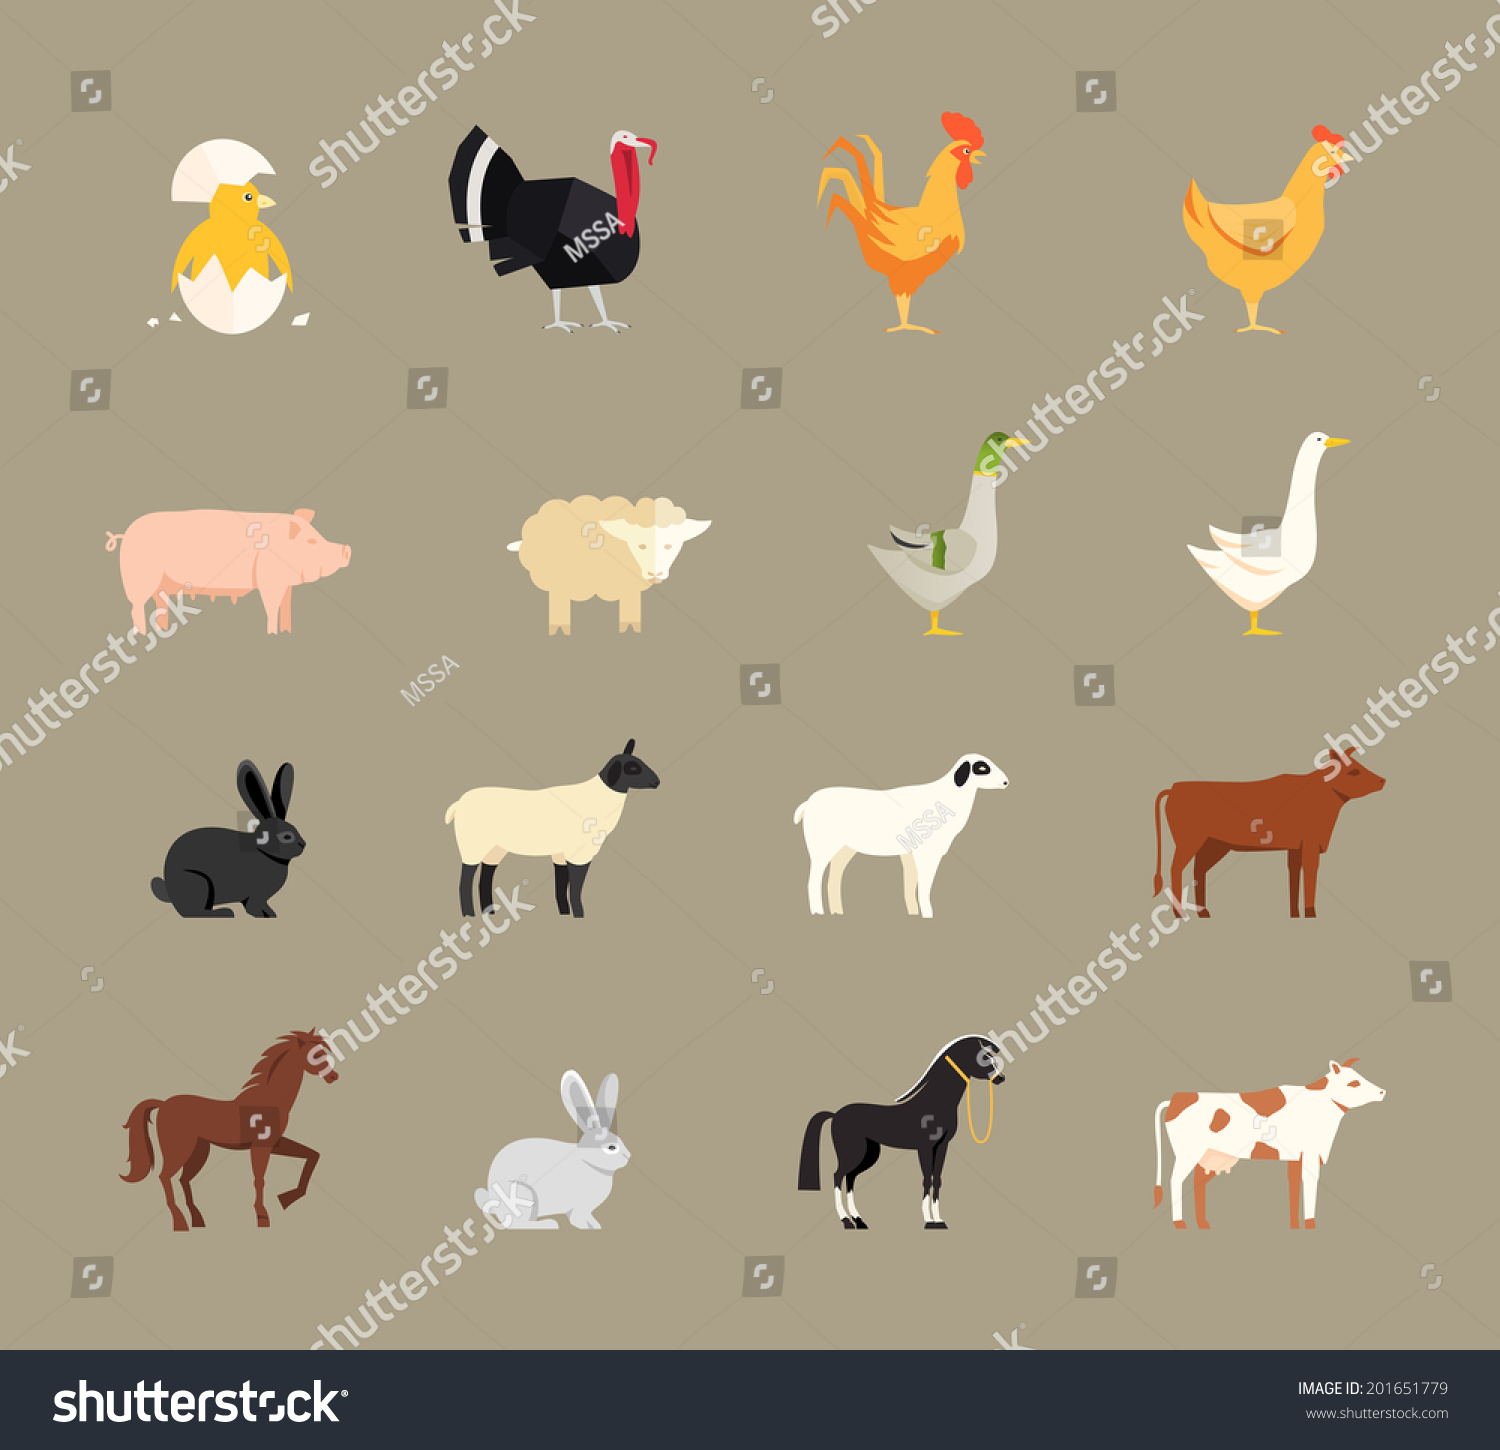 Agri cultures project logo duckdog design - Farm Animals Set In Flat Vector Style With A Chicken Turkey Hen Cock Pig Sheep Goose